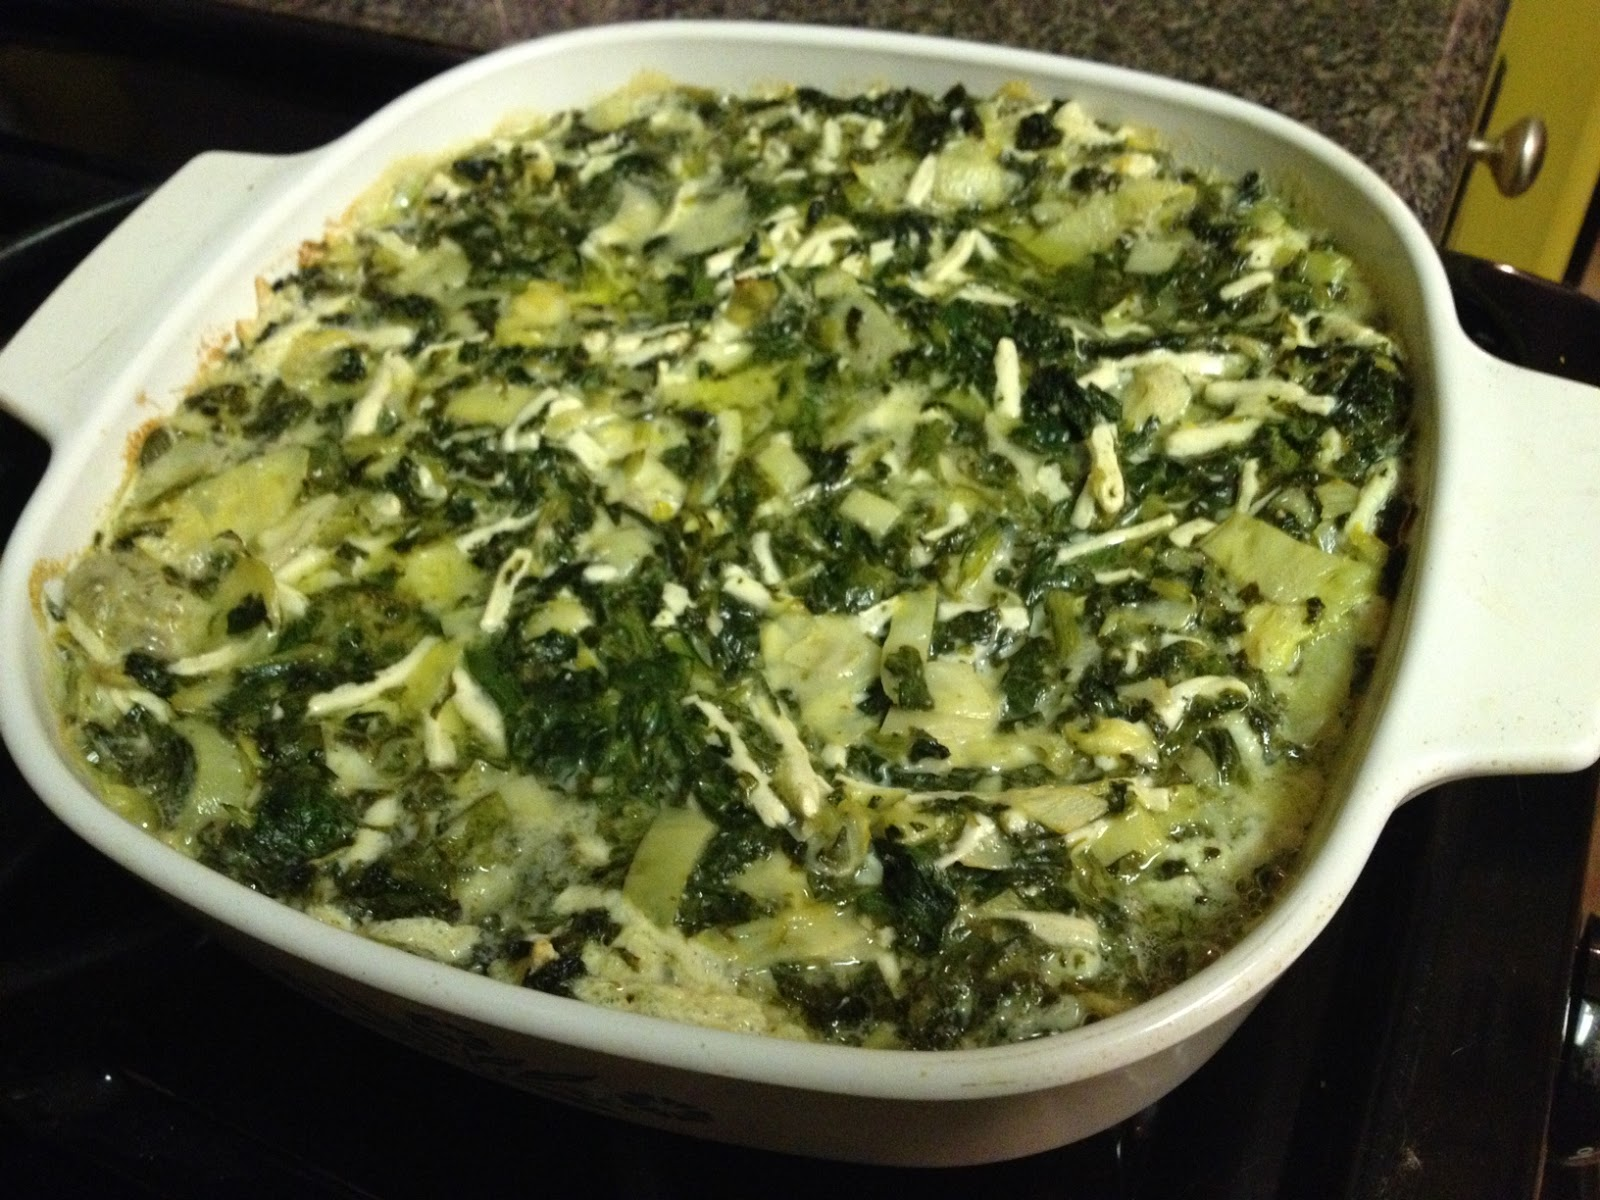 So anyway, I whipped up a quick Spinach Artichoke Dip , which I'll be ...